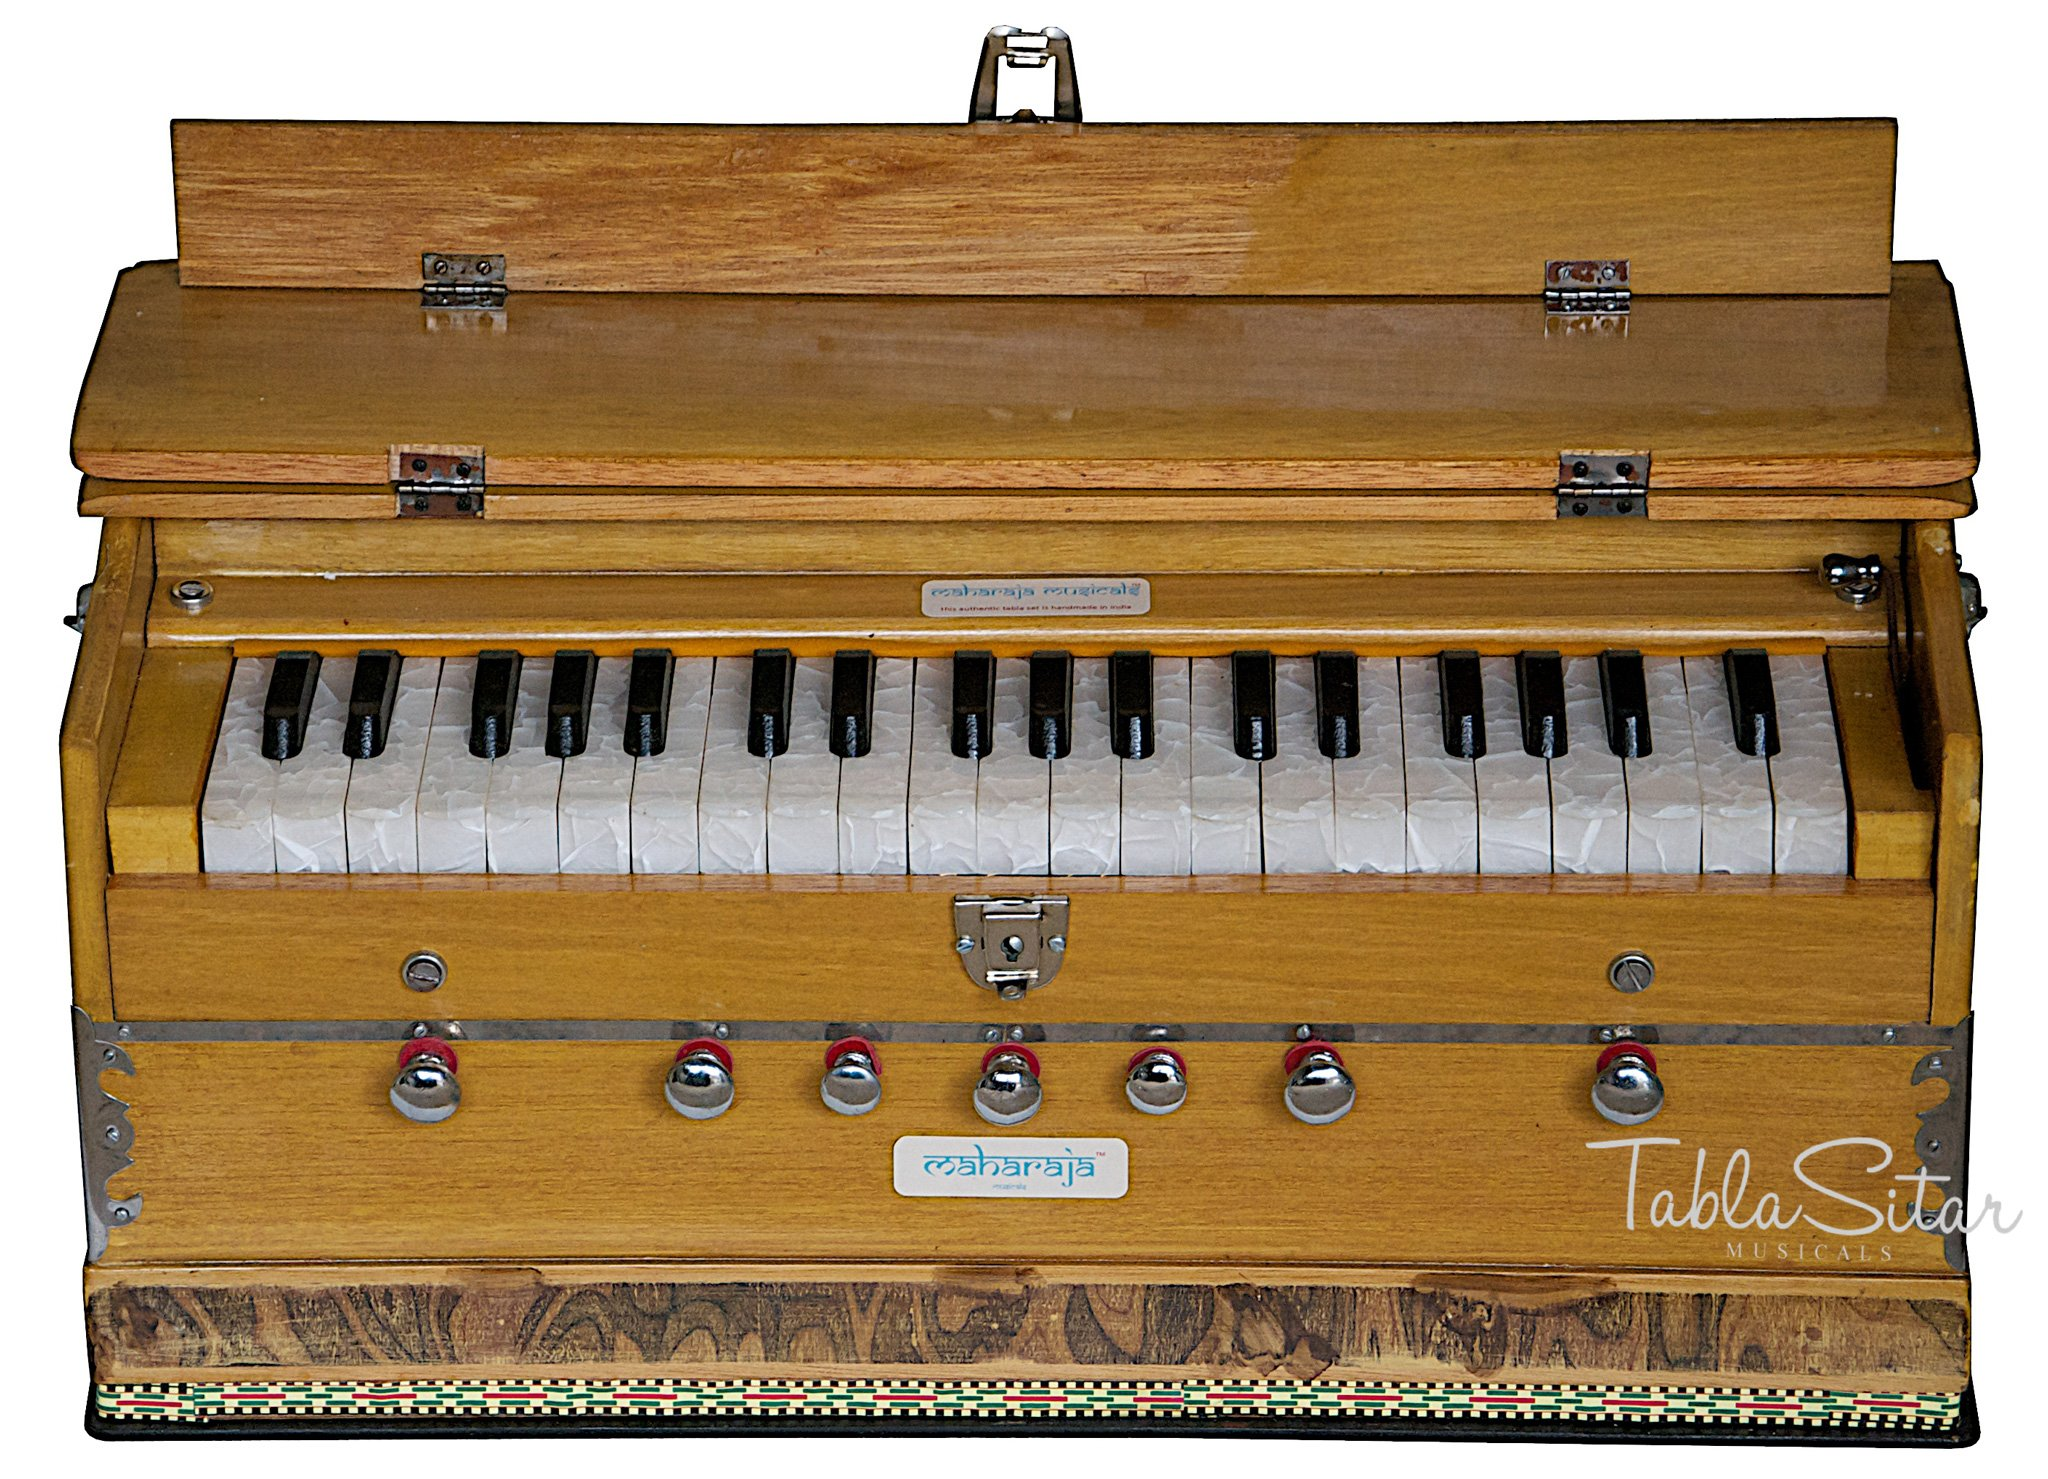 Harmonium, Maharaja Musicals, In USA, 3 1/4 Octave, Double Reed, Coupler, Natural Color, 7 Stops, Standard, Book, Tuned to A440, Padded Bag, Musical Instrument Indian (PDI-ABF)